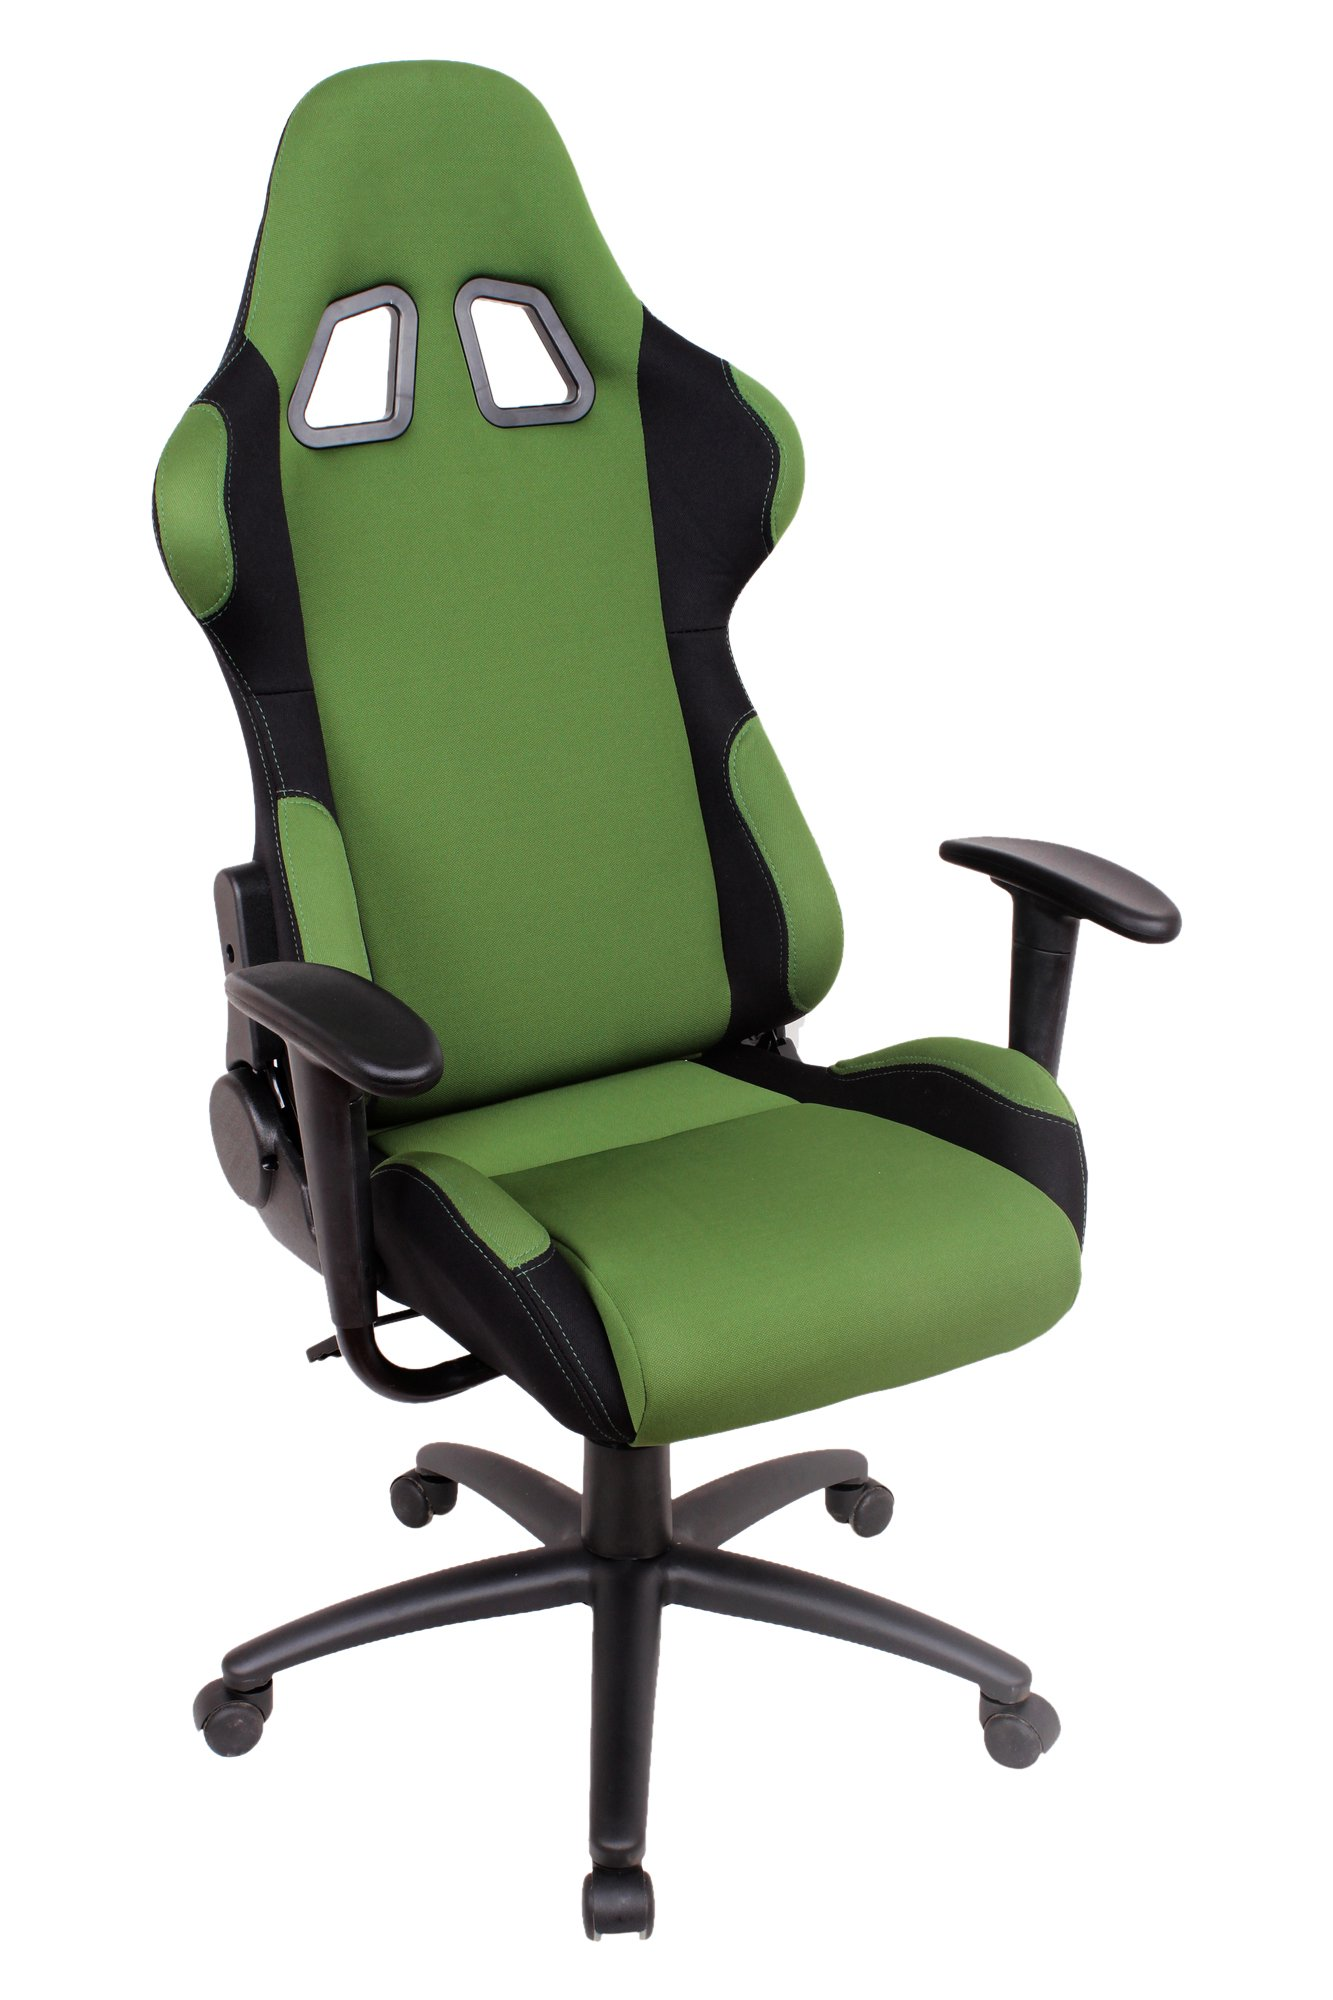 jeep desk chair shower on wheels for disabled buy ez lounge racing car seat office green black in